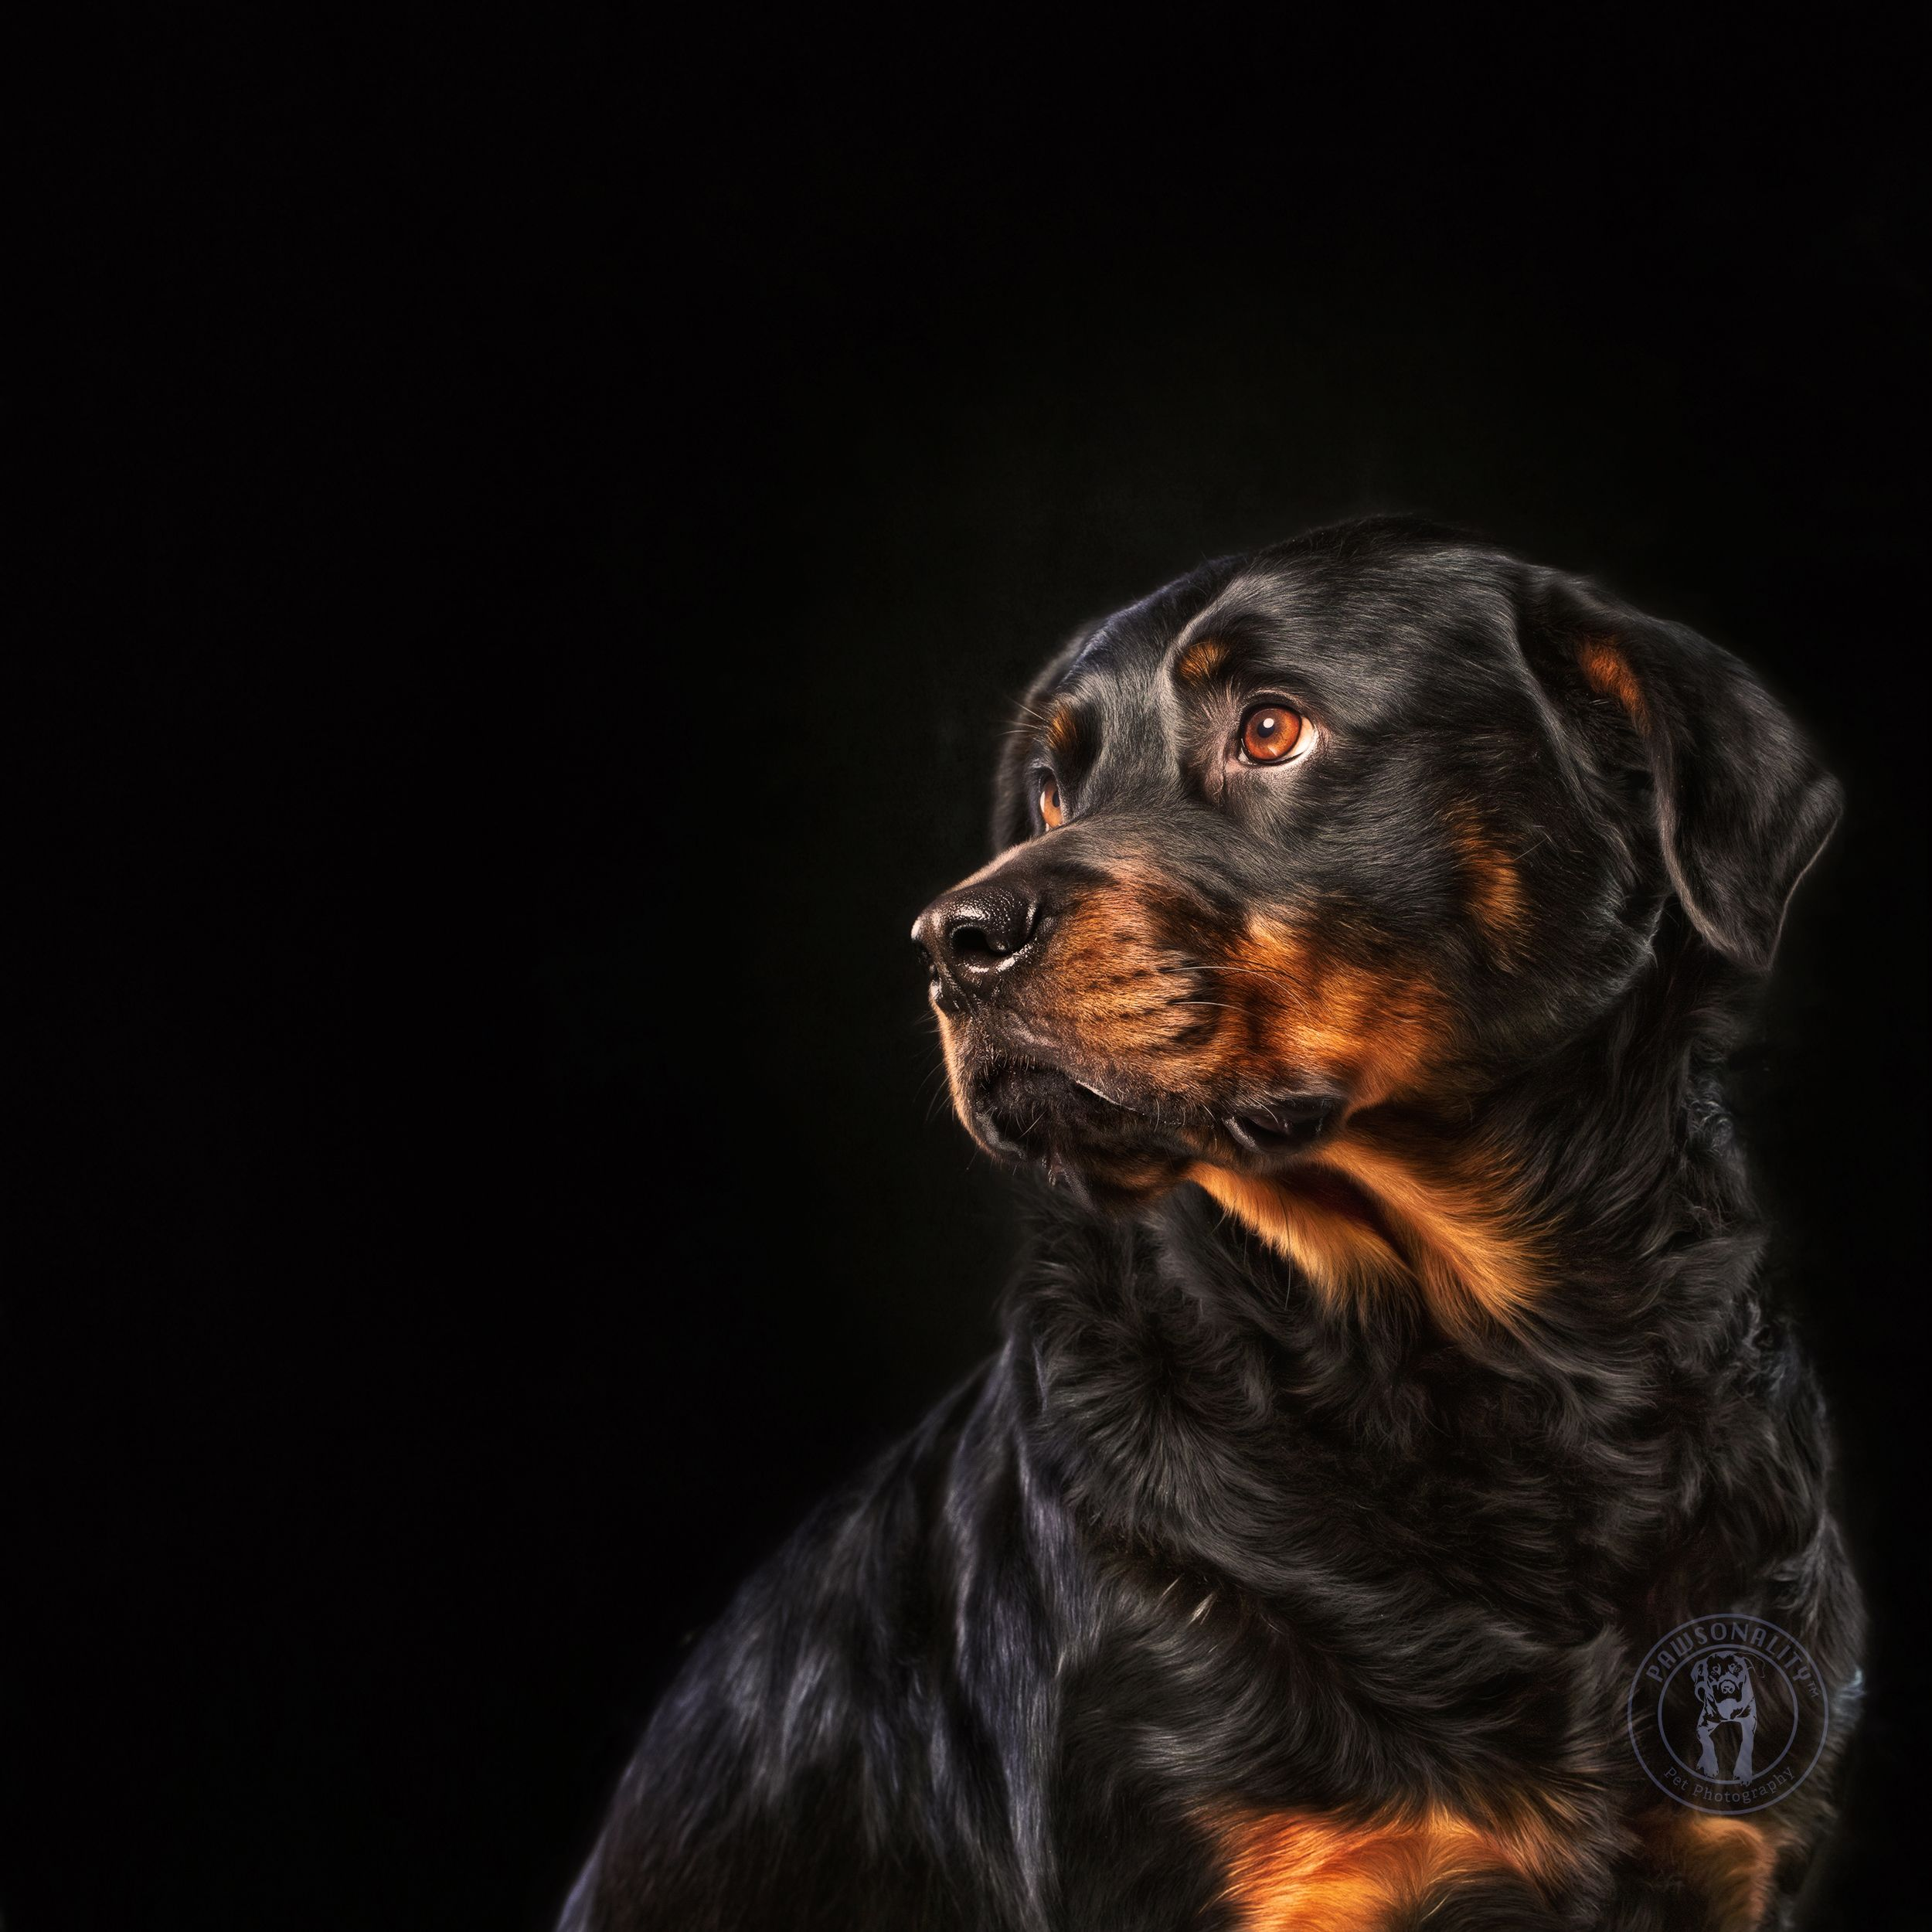 Dreaming Of You A Portrait Of A Female Rottweiler Creative